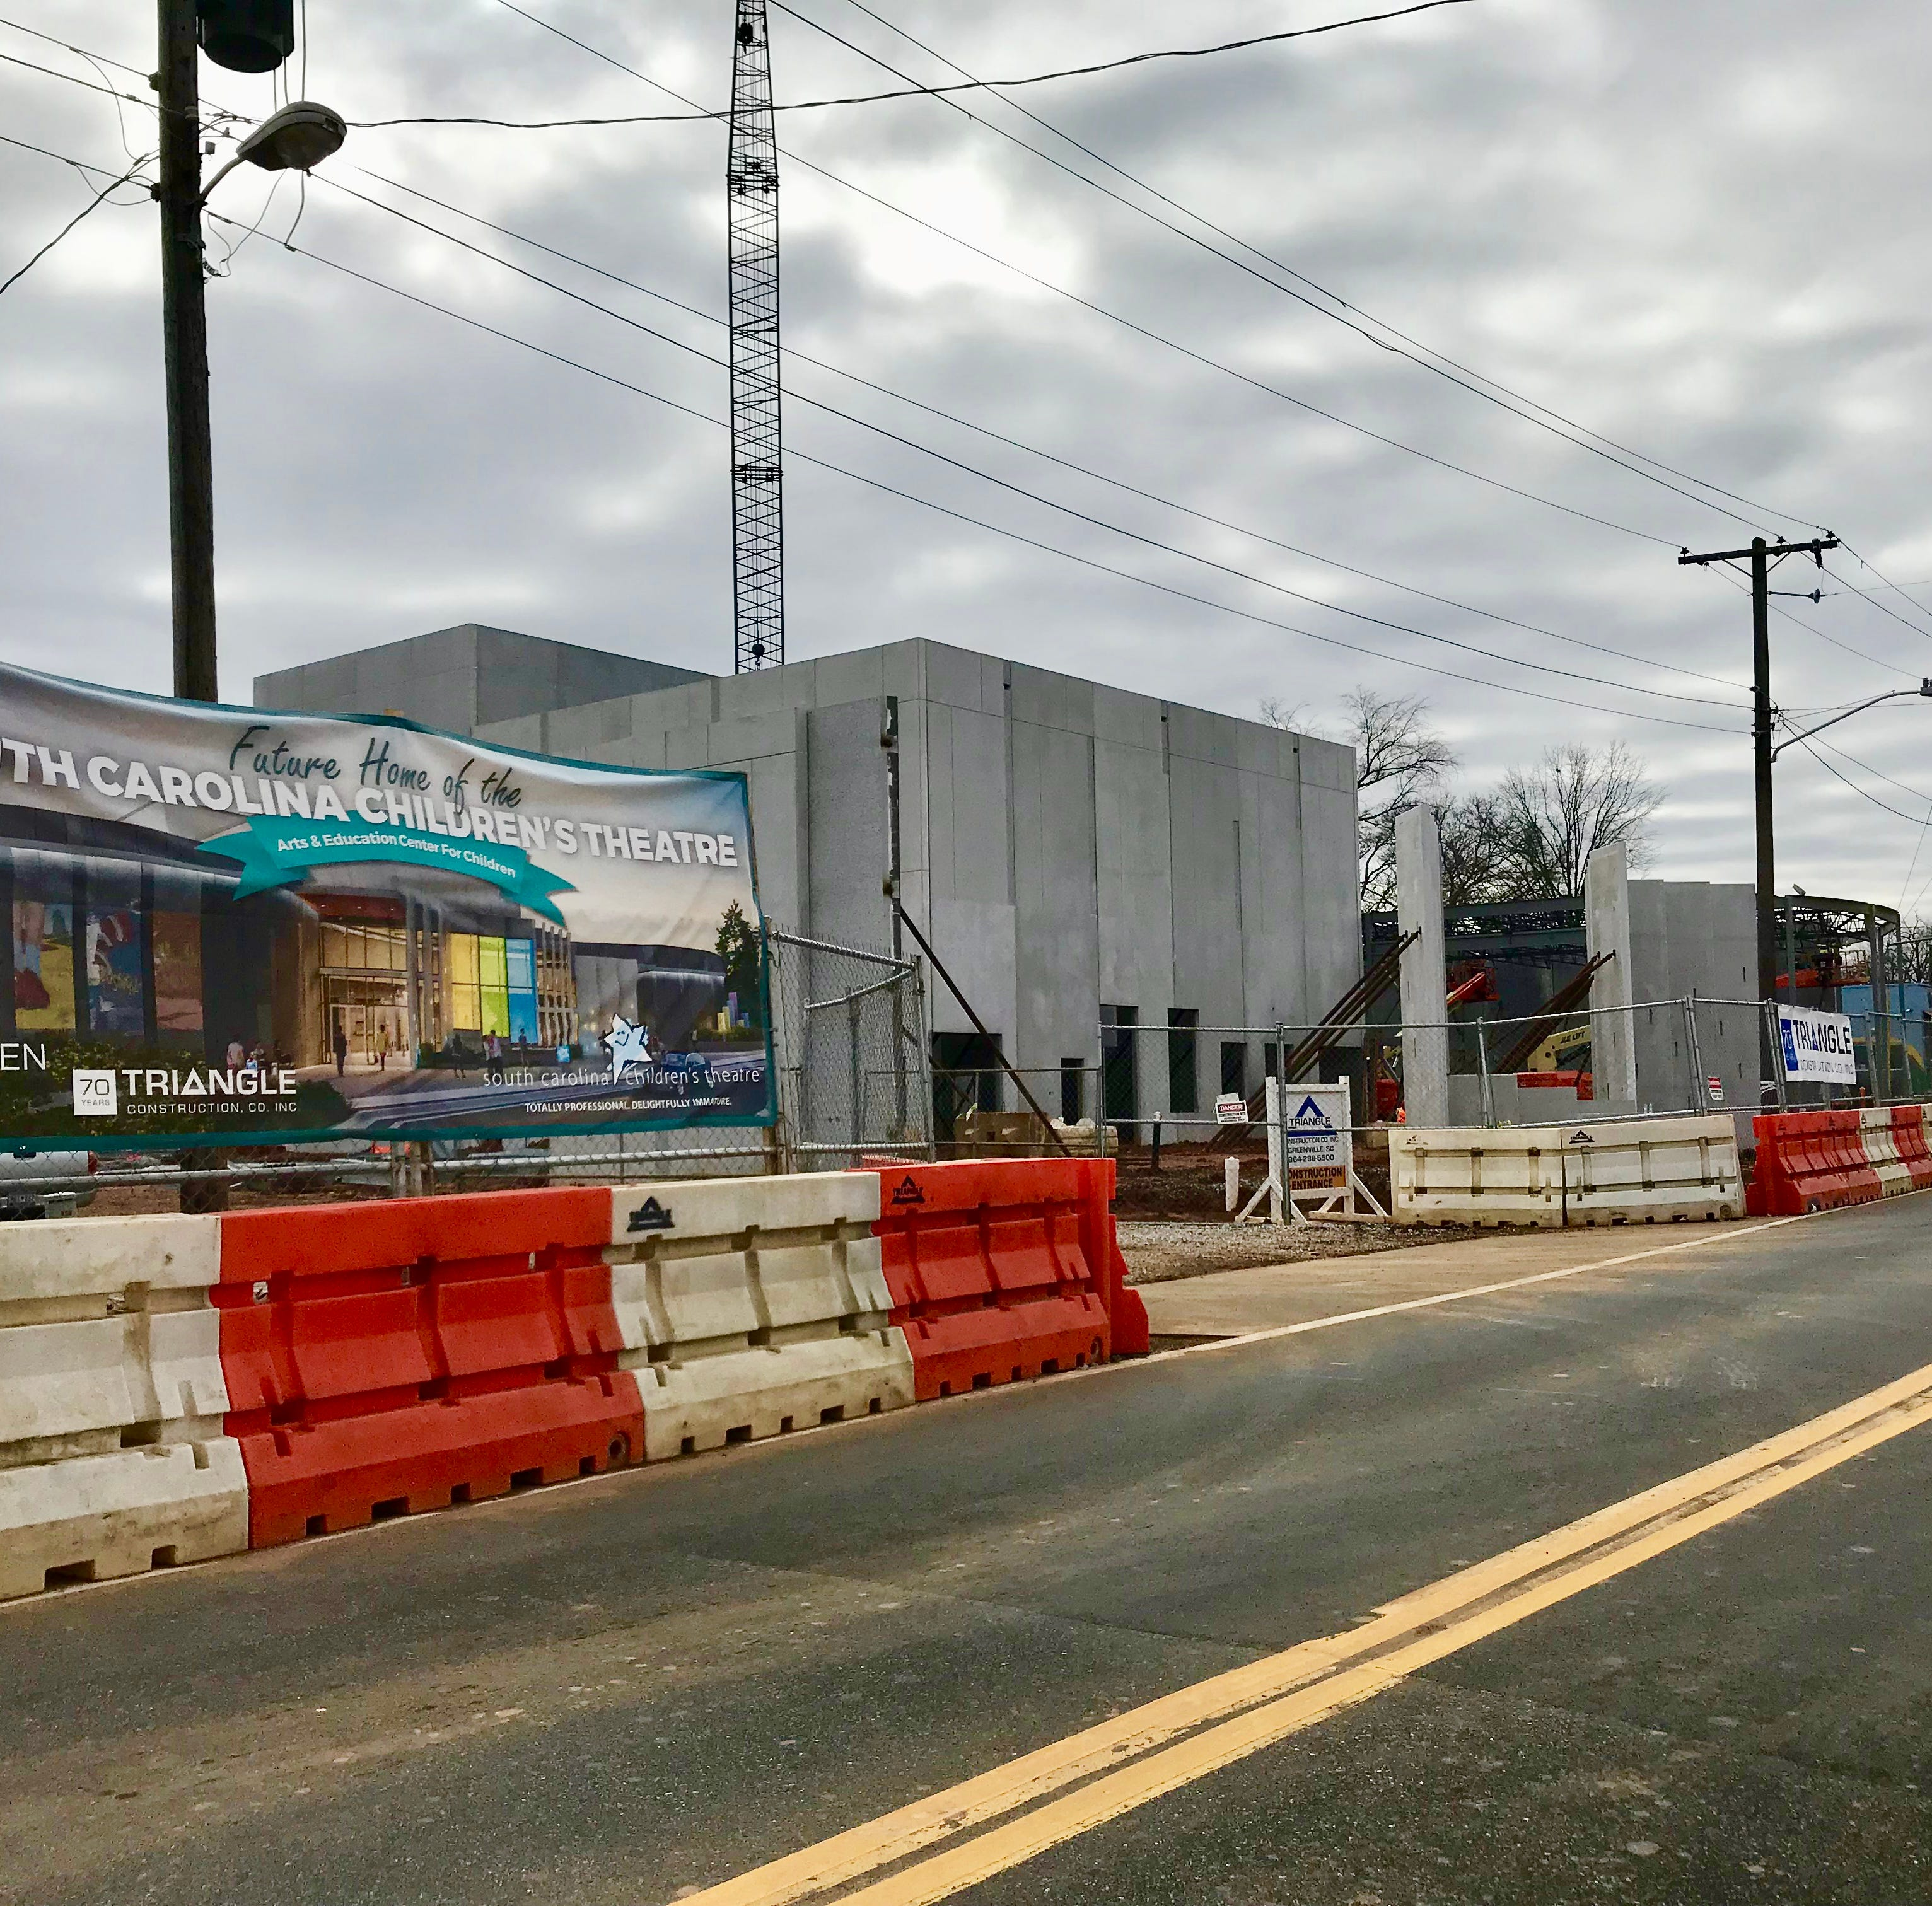 Ask LaFleur: What's coming to the construction sites in Greenville's West End?